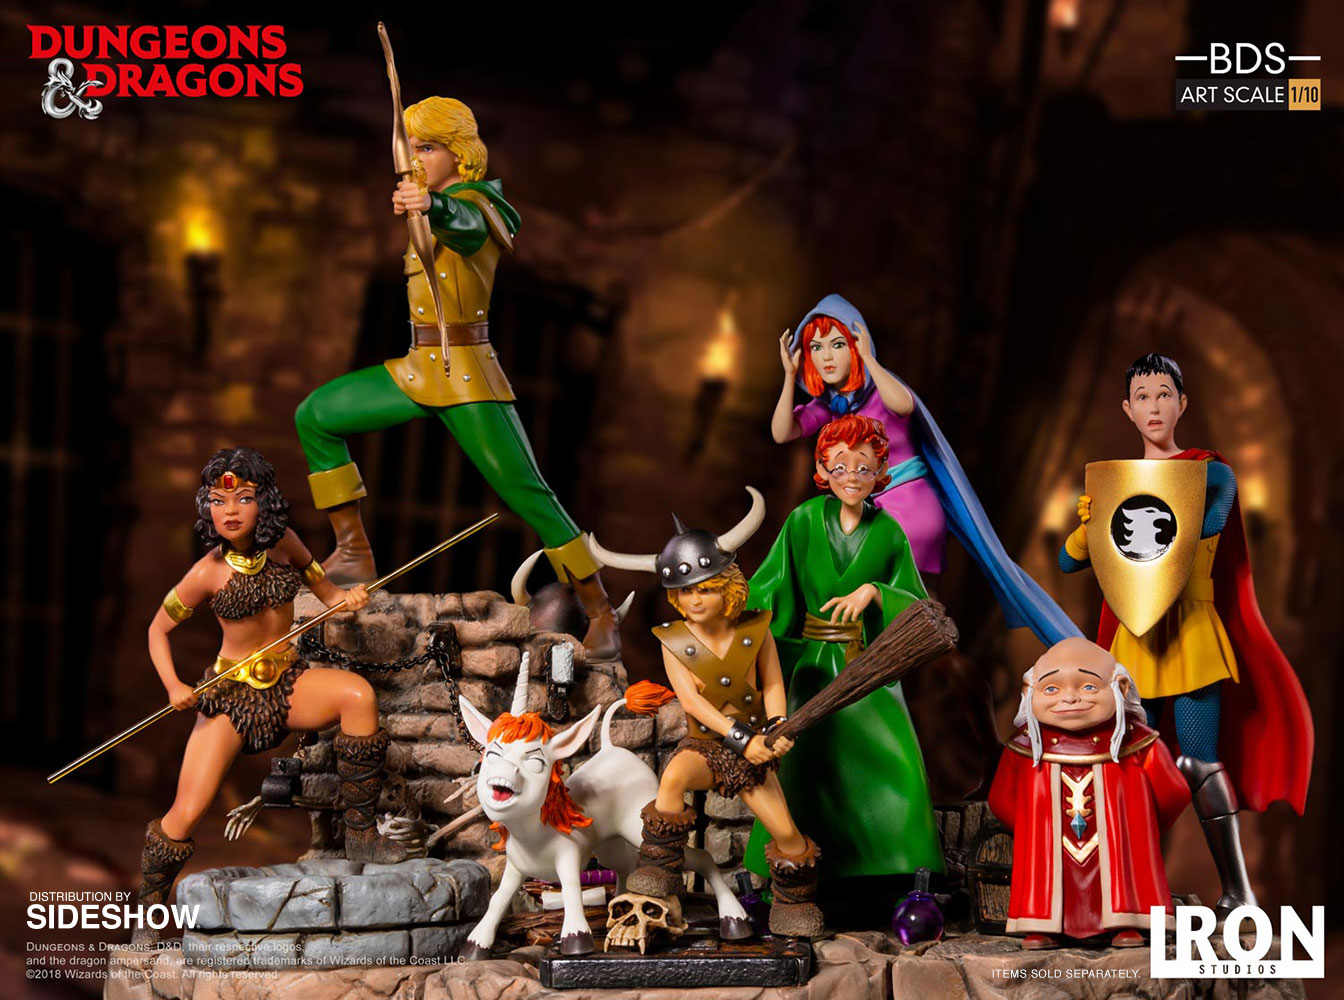 dungeons and dragons dungeon master statue by iron studios